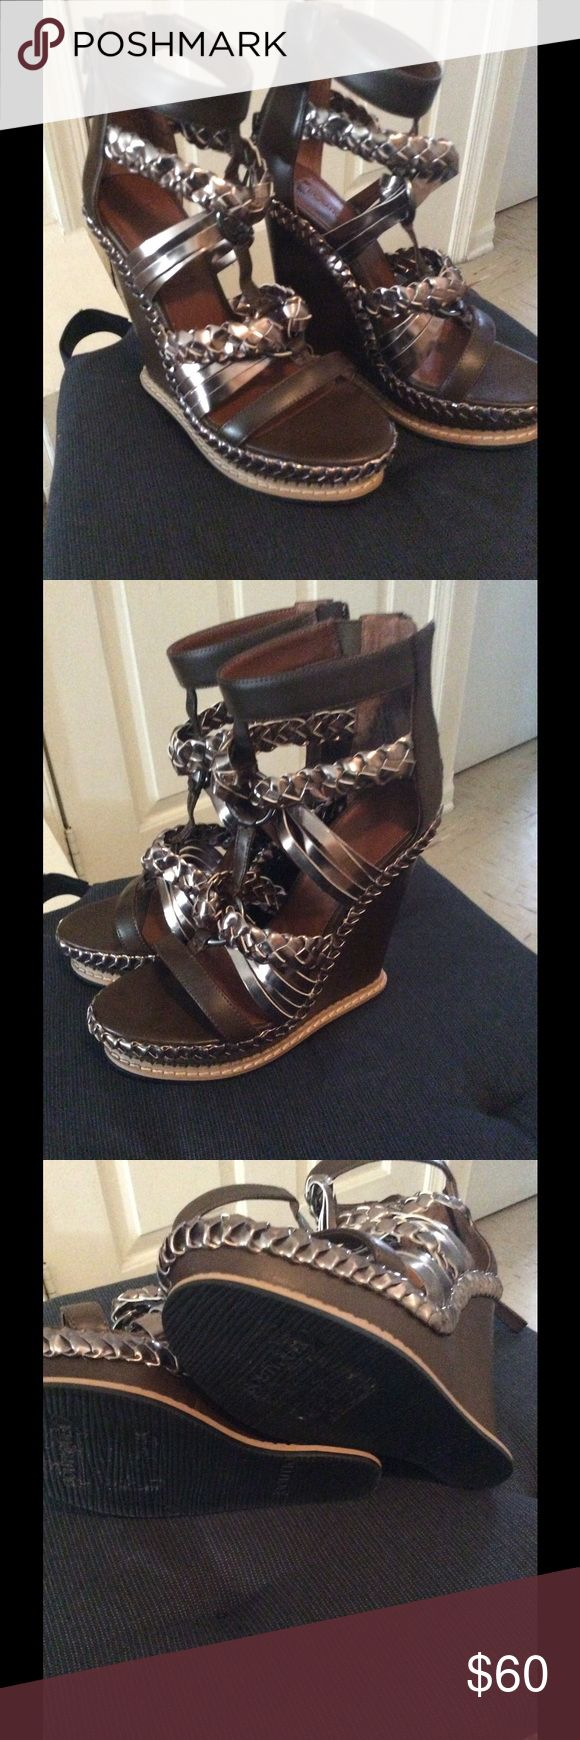 Women's caged sandals Brown wedges with metallic trim Boutique 9 Shoes Sandals